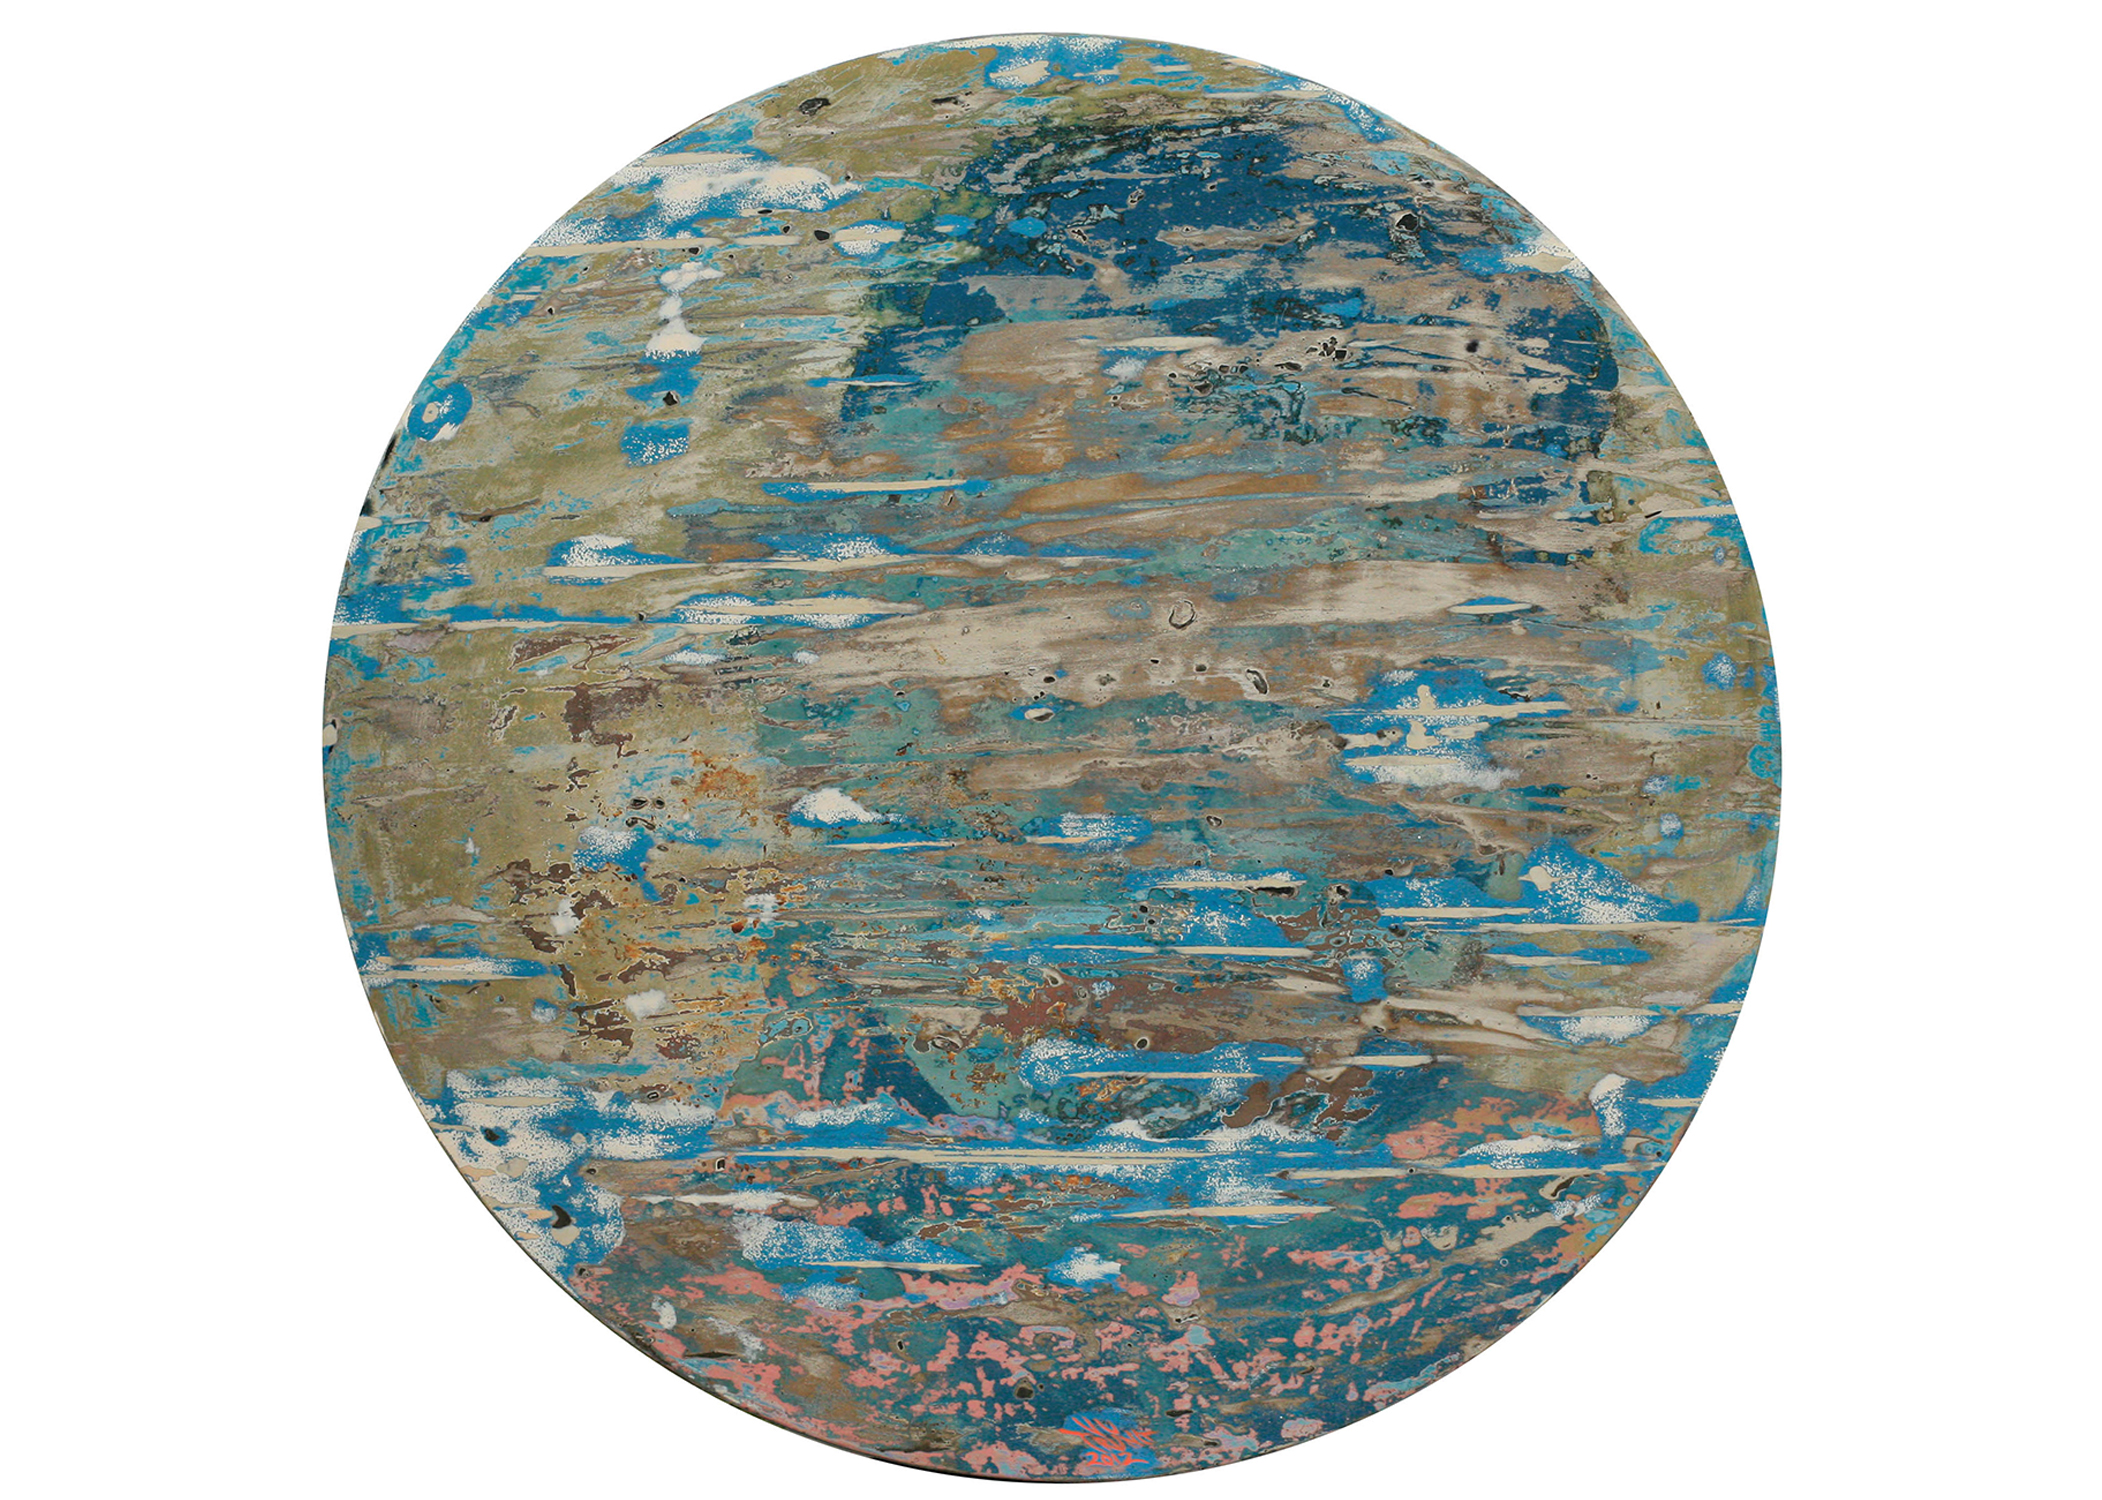 Worlds of Water by Vu Duc Trung, lacquer on wood, 2012, 60 cm sphere